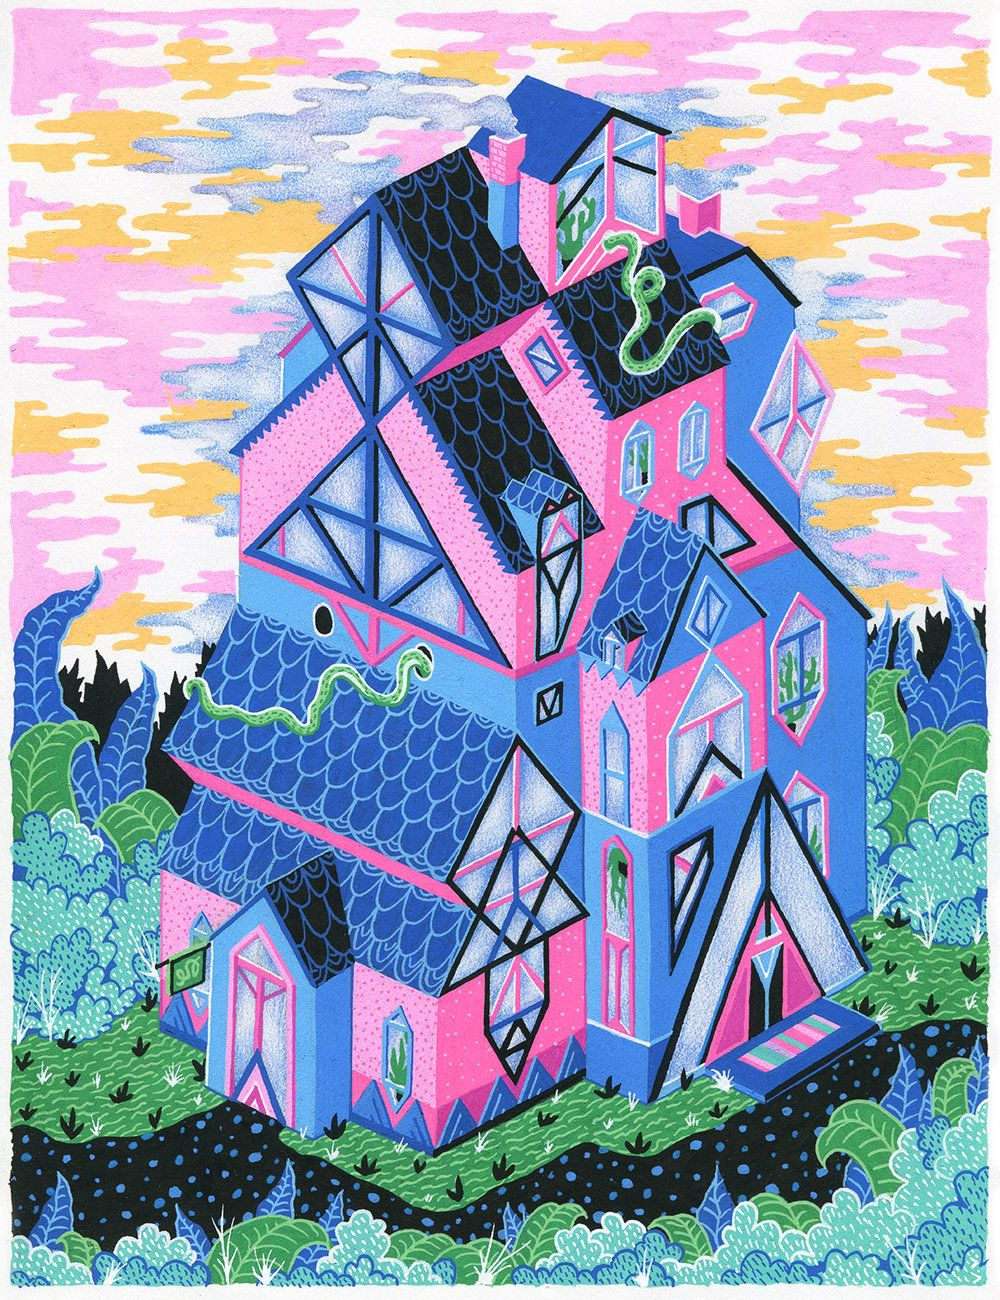 The Surreal, Gouache Houses Crafted by Valeriya Volkova